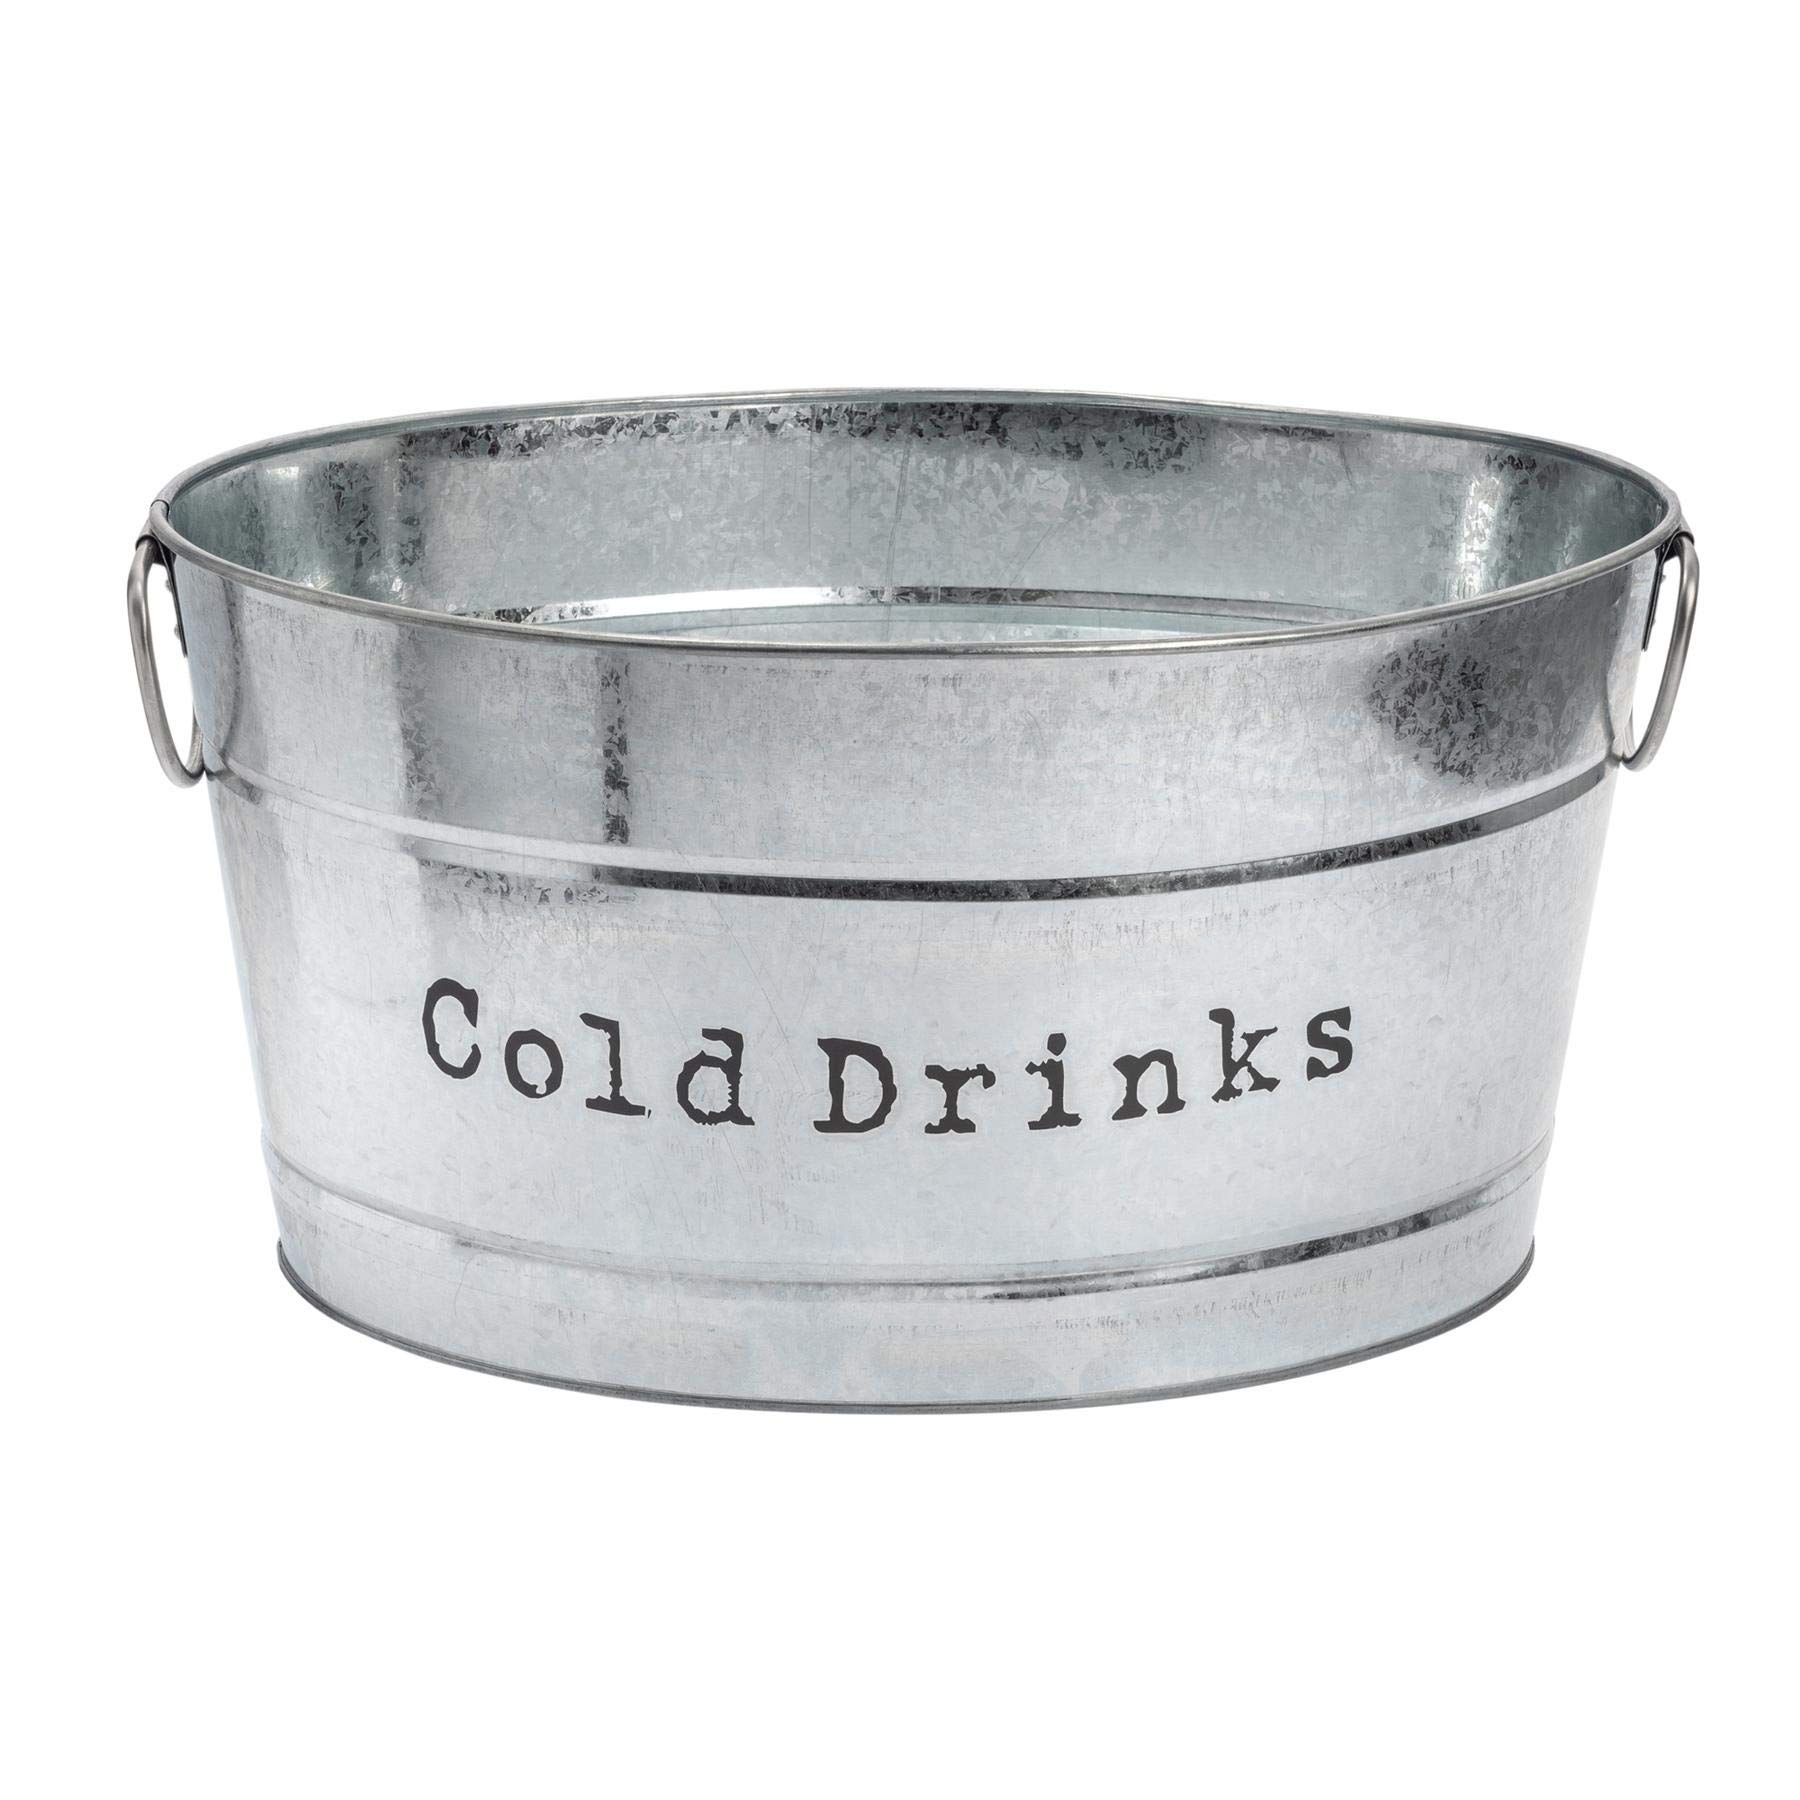 Harbour Housewares Industrial Cold Drinks Bucket - Large Vintage Style Steel Party Cooler Tub - Side Handles - Silver